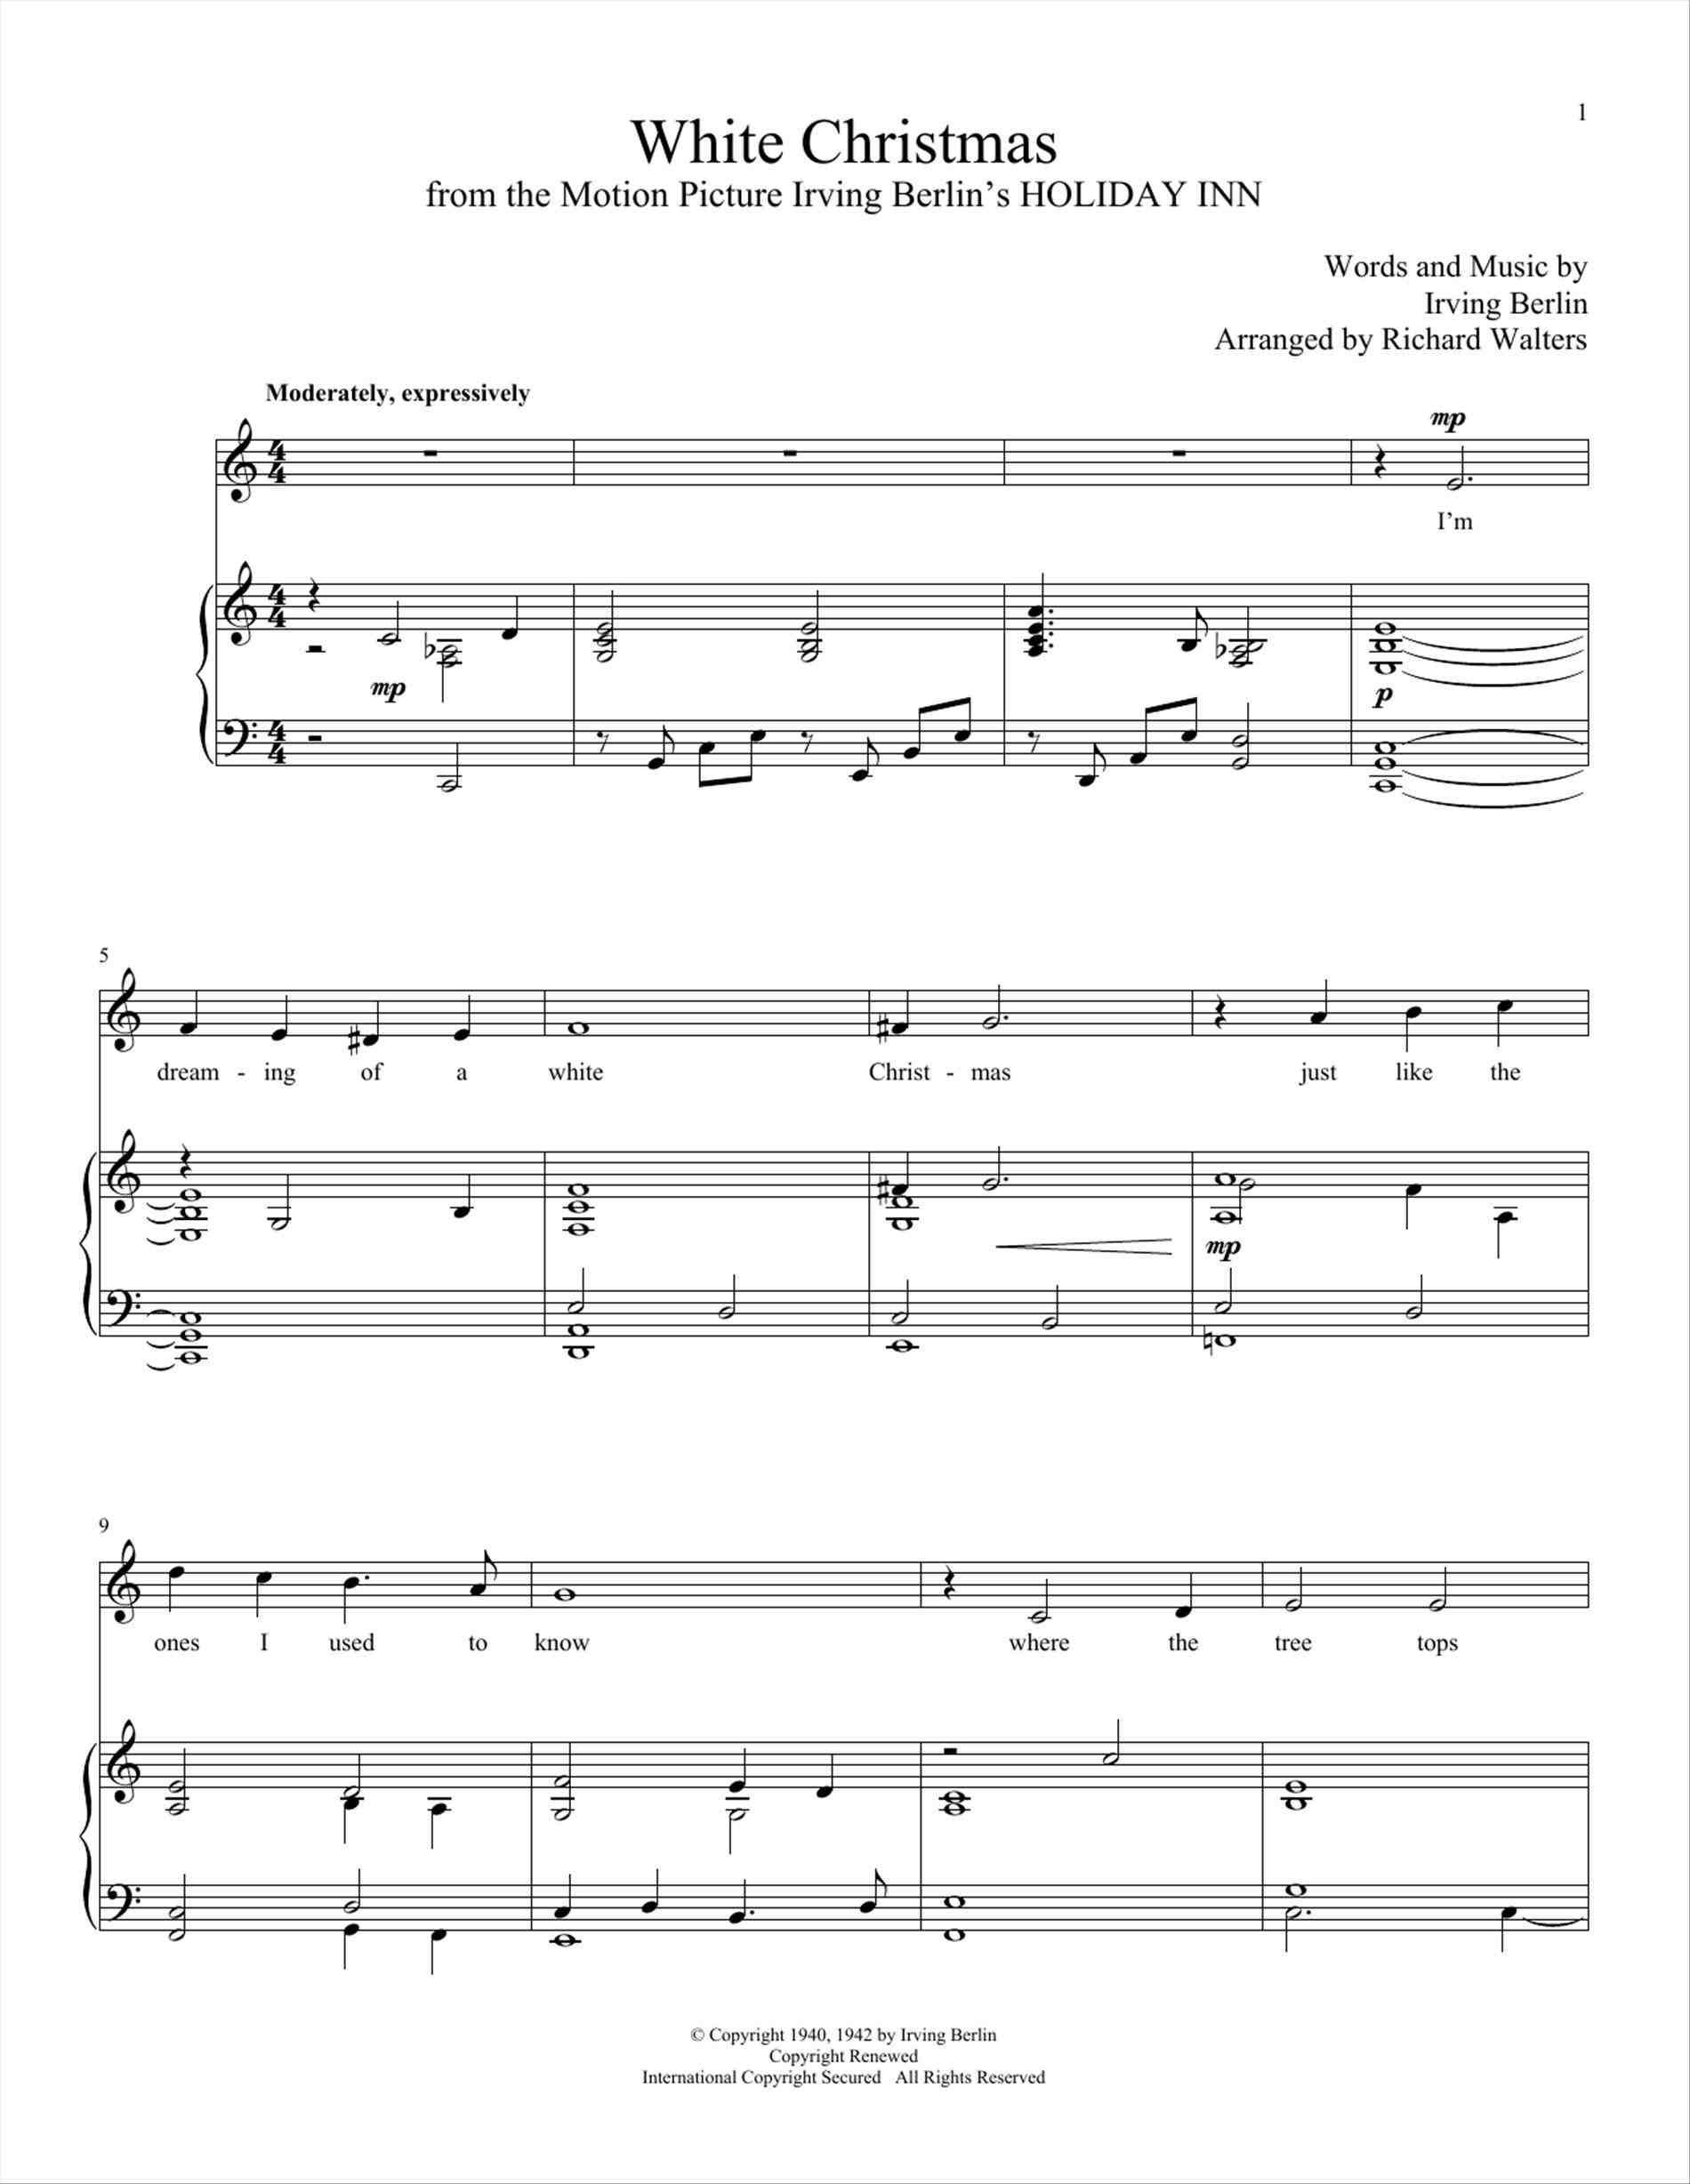 white christmas piano sheet music | Xmast Decors | Pinterest ...